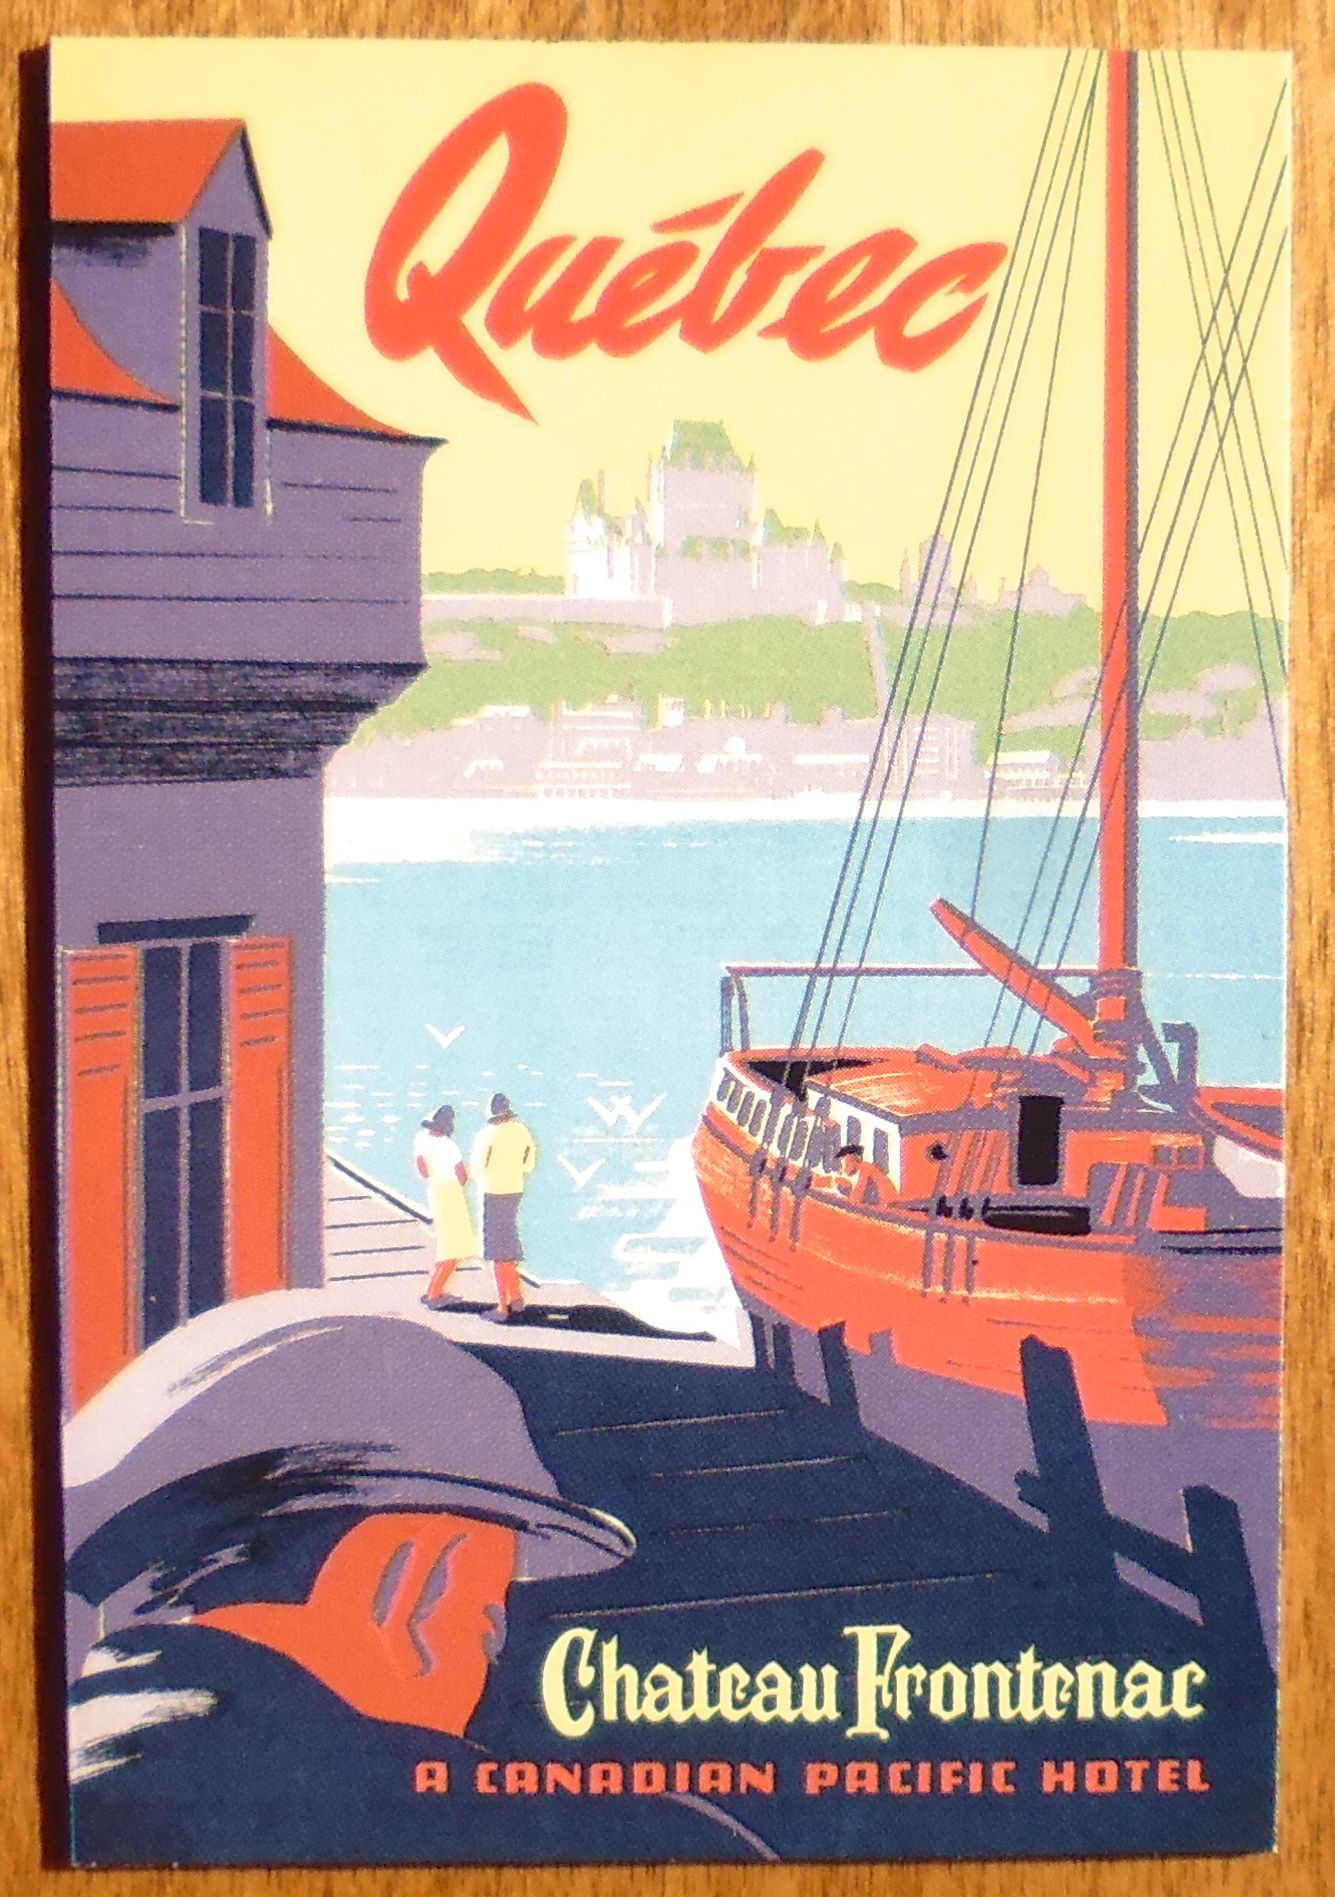 Quebec Chateau Frontenac Canada Vintage Canadian Travel Advertisement Poster